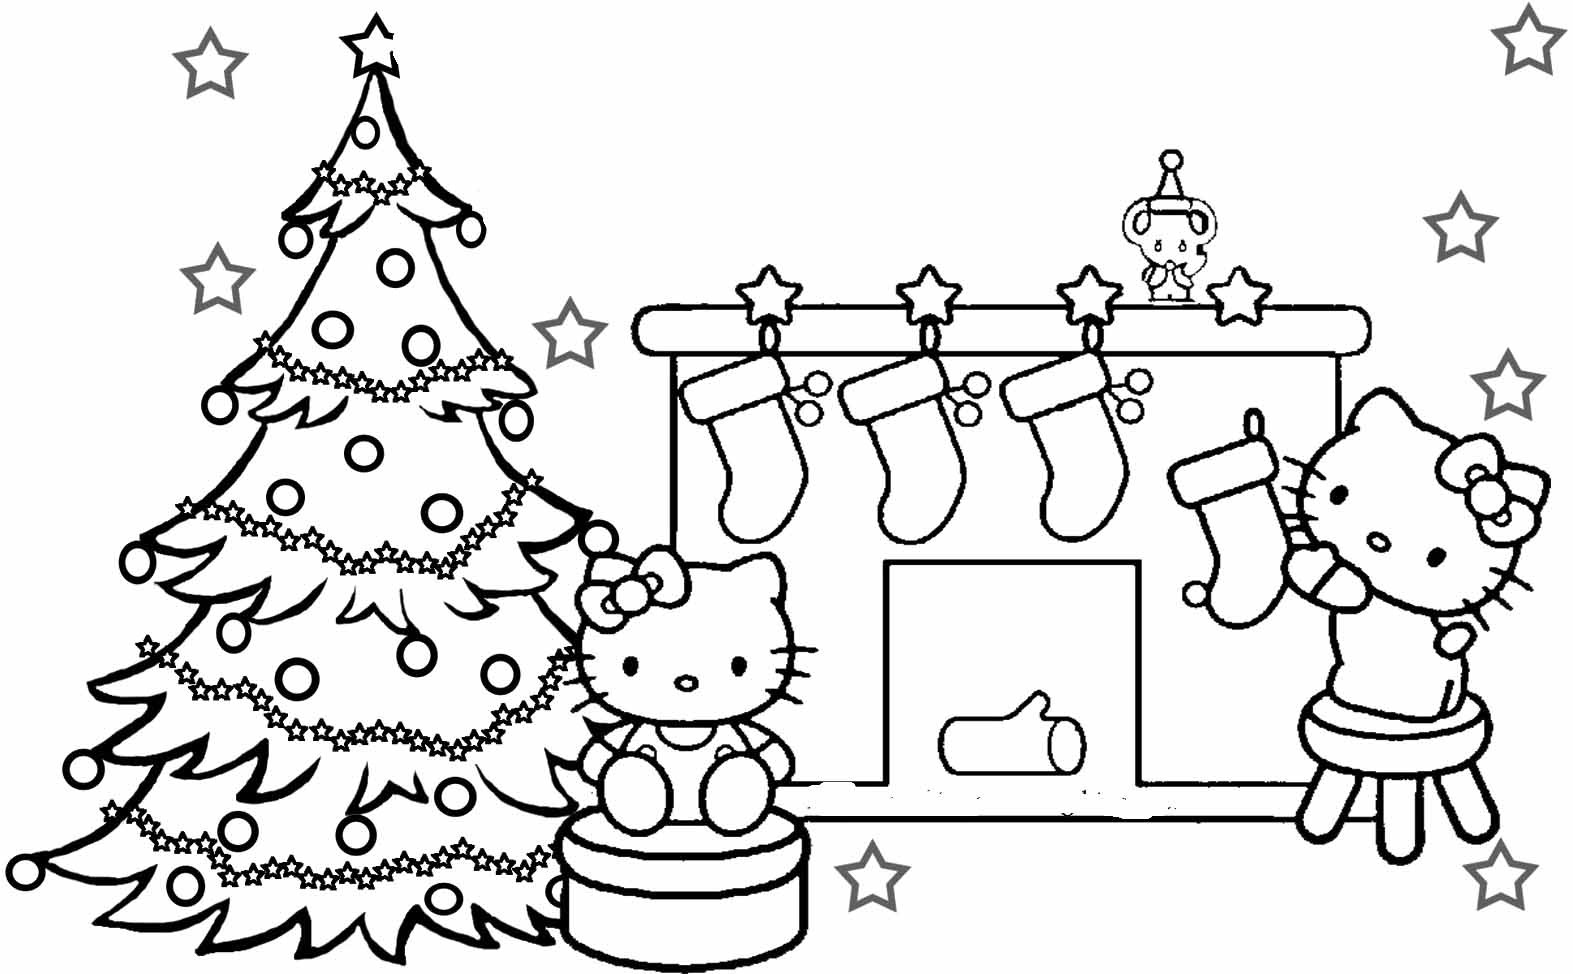 Free Christmas Coloring Pages For Kids  Christmas Coloring Pages For Kids Printable Coloring Home